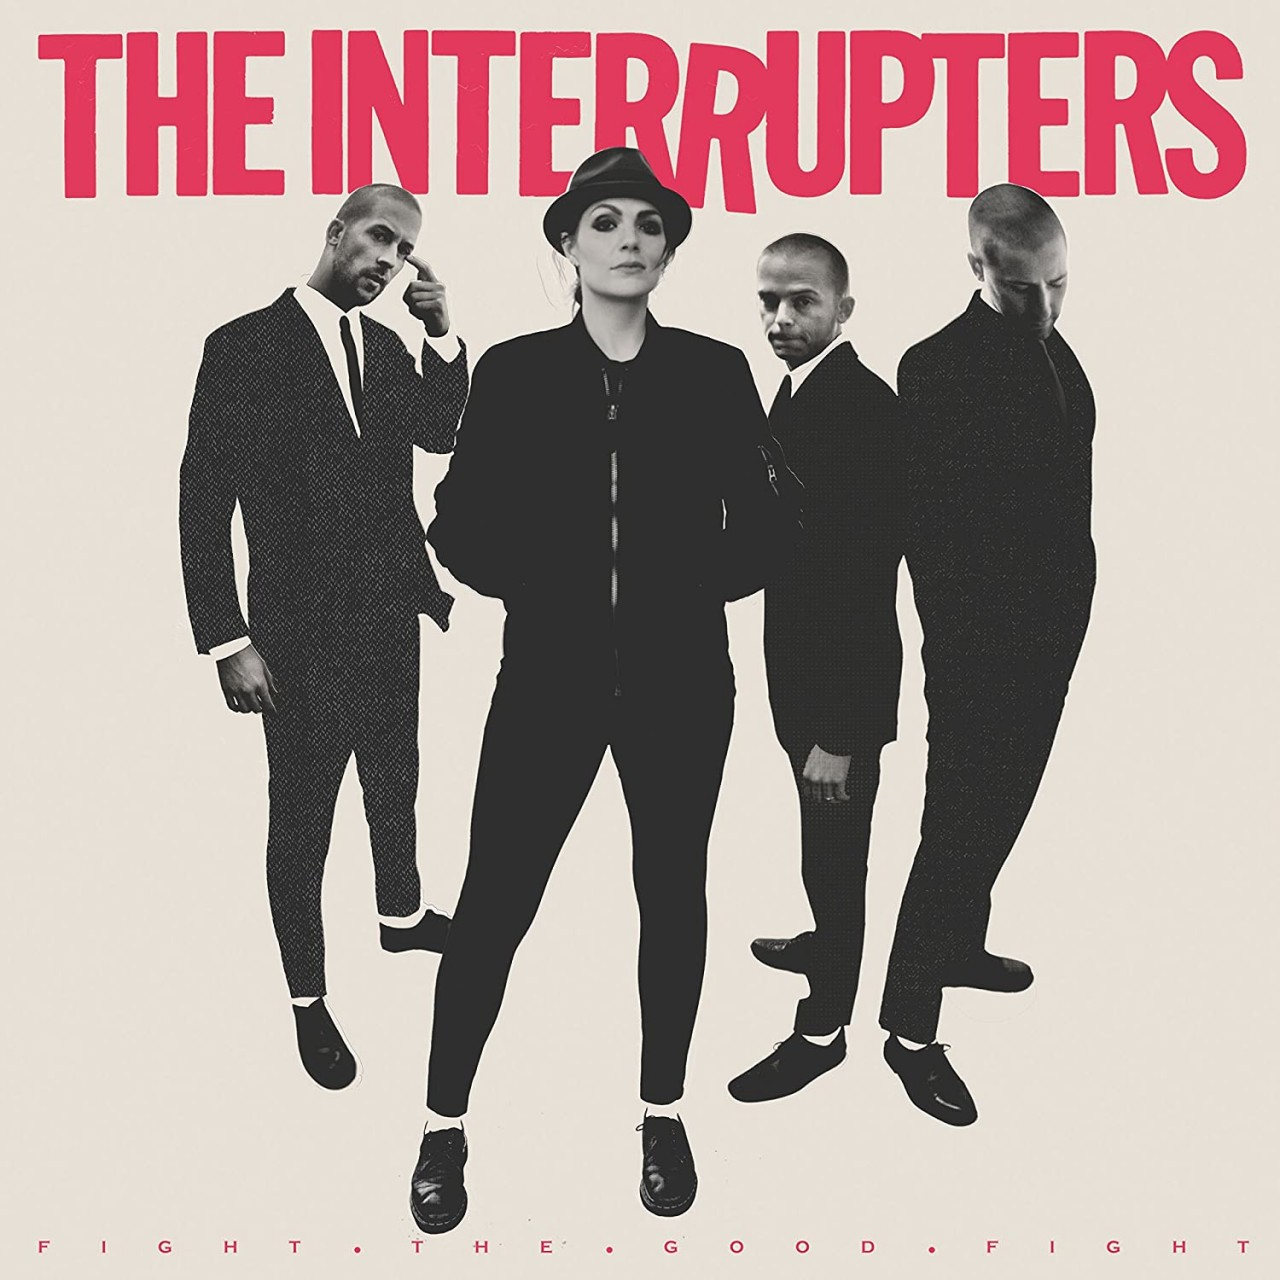 RETRO CHRONIQUE - The Interrupters